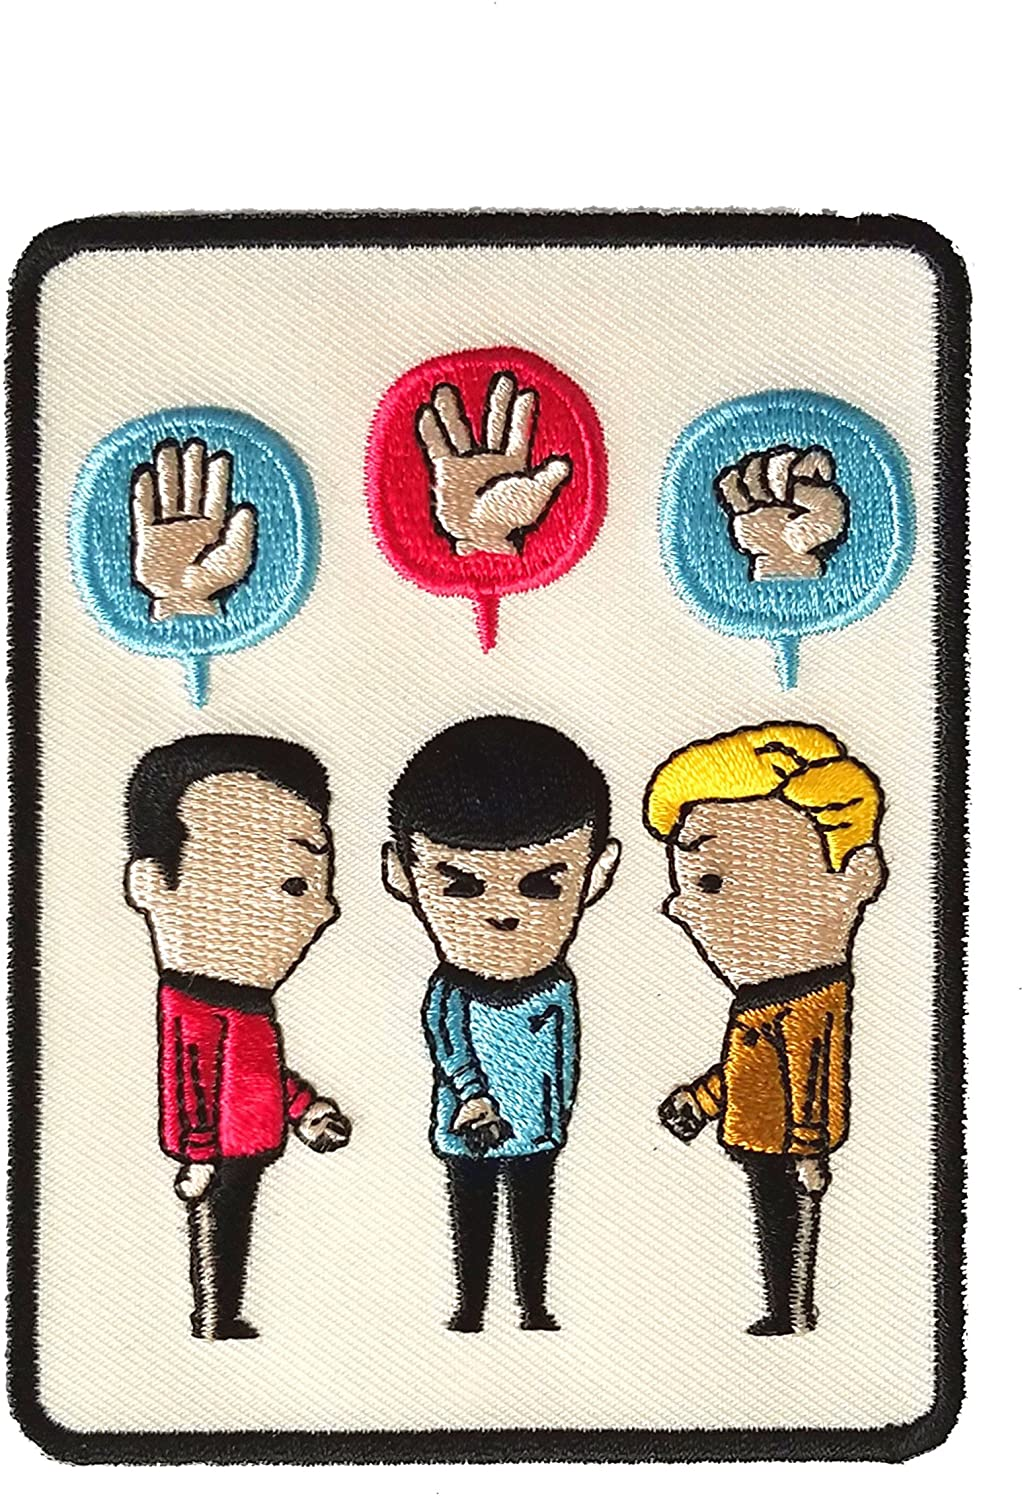 'Paper, Scissors, Rock' Funny Space Show Parody - Iron on Embroidered Patch Applique